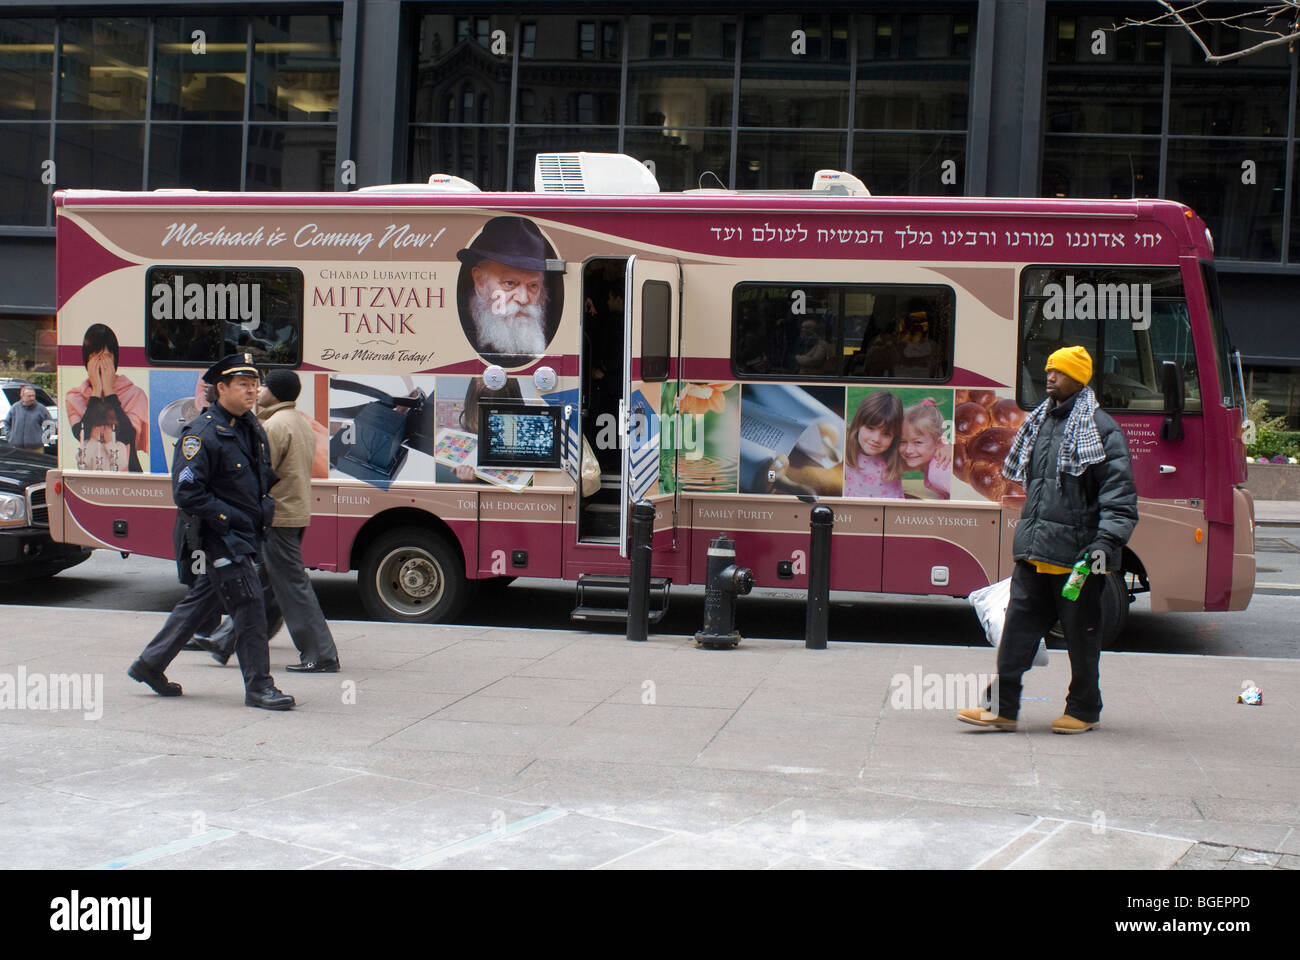 A Lubavitcher Mitzvah Tank parked in Lower Manahttan in New York - Stock Image